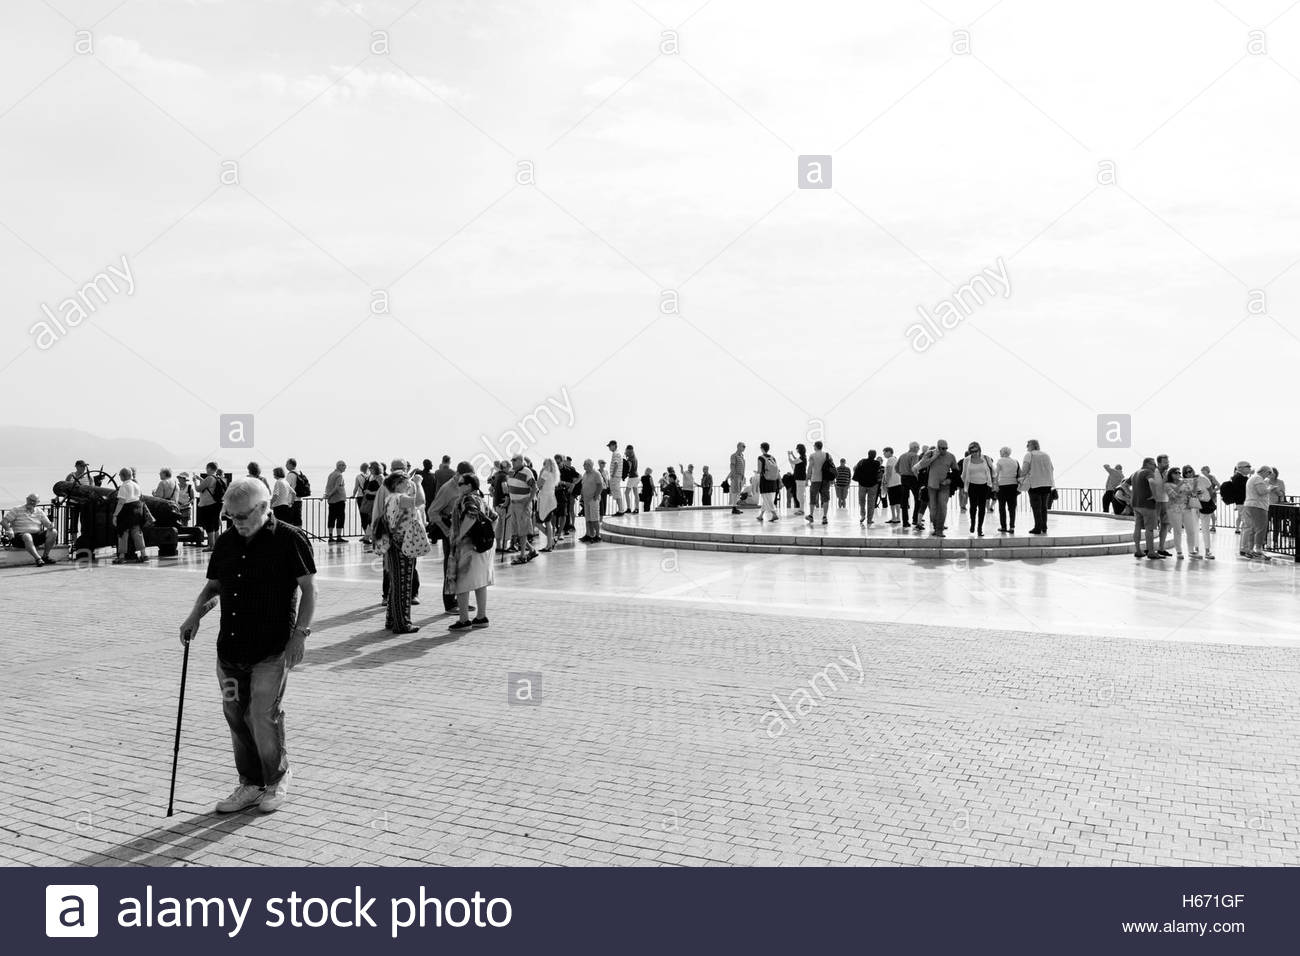 crowds of  tourists gather on the Balcón de Europa in Nerja Spain. Taken in black and white Stock Photo